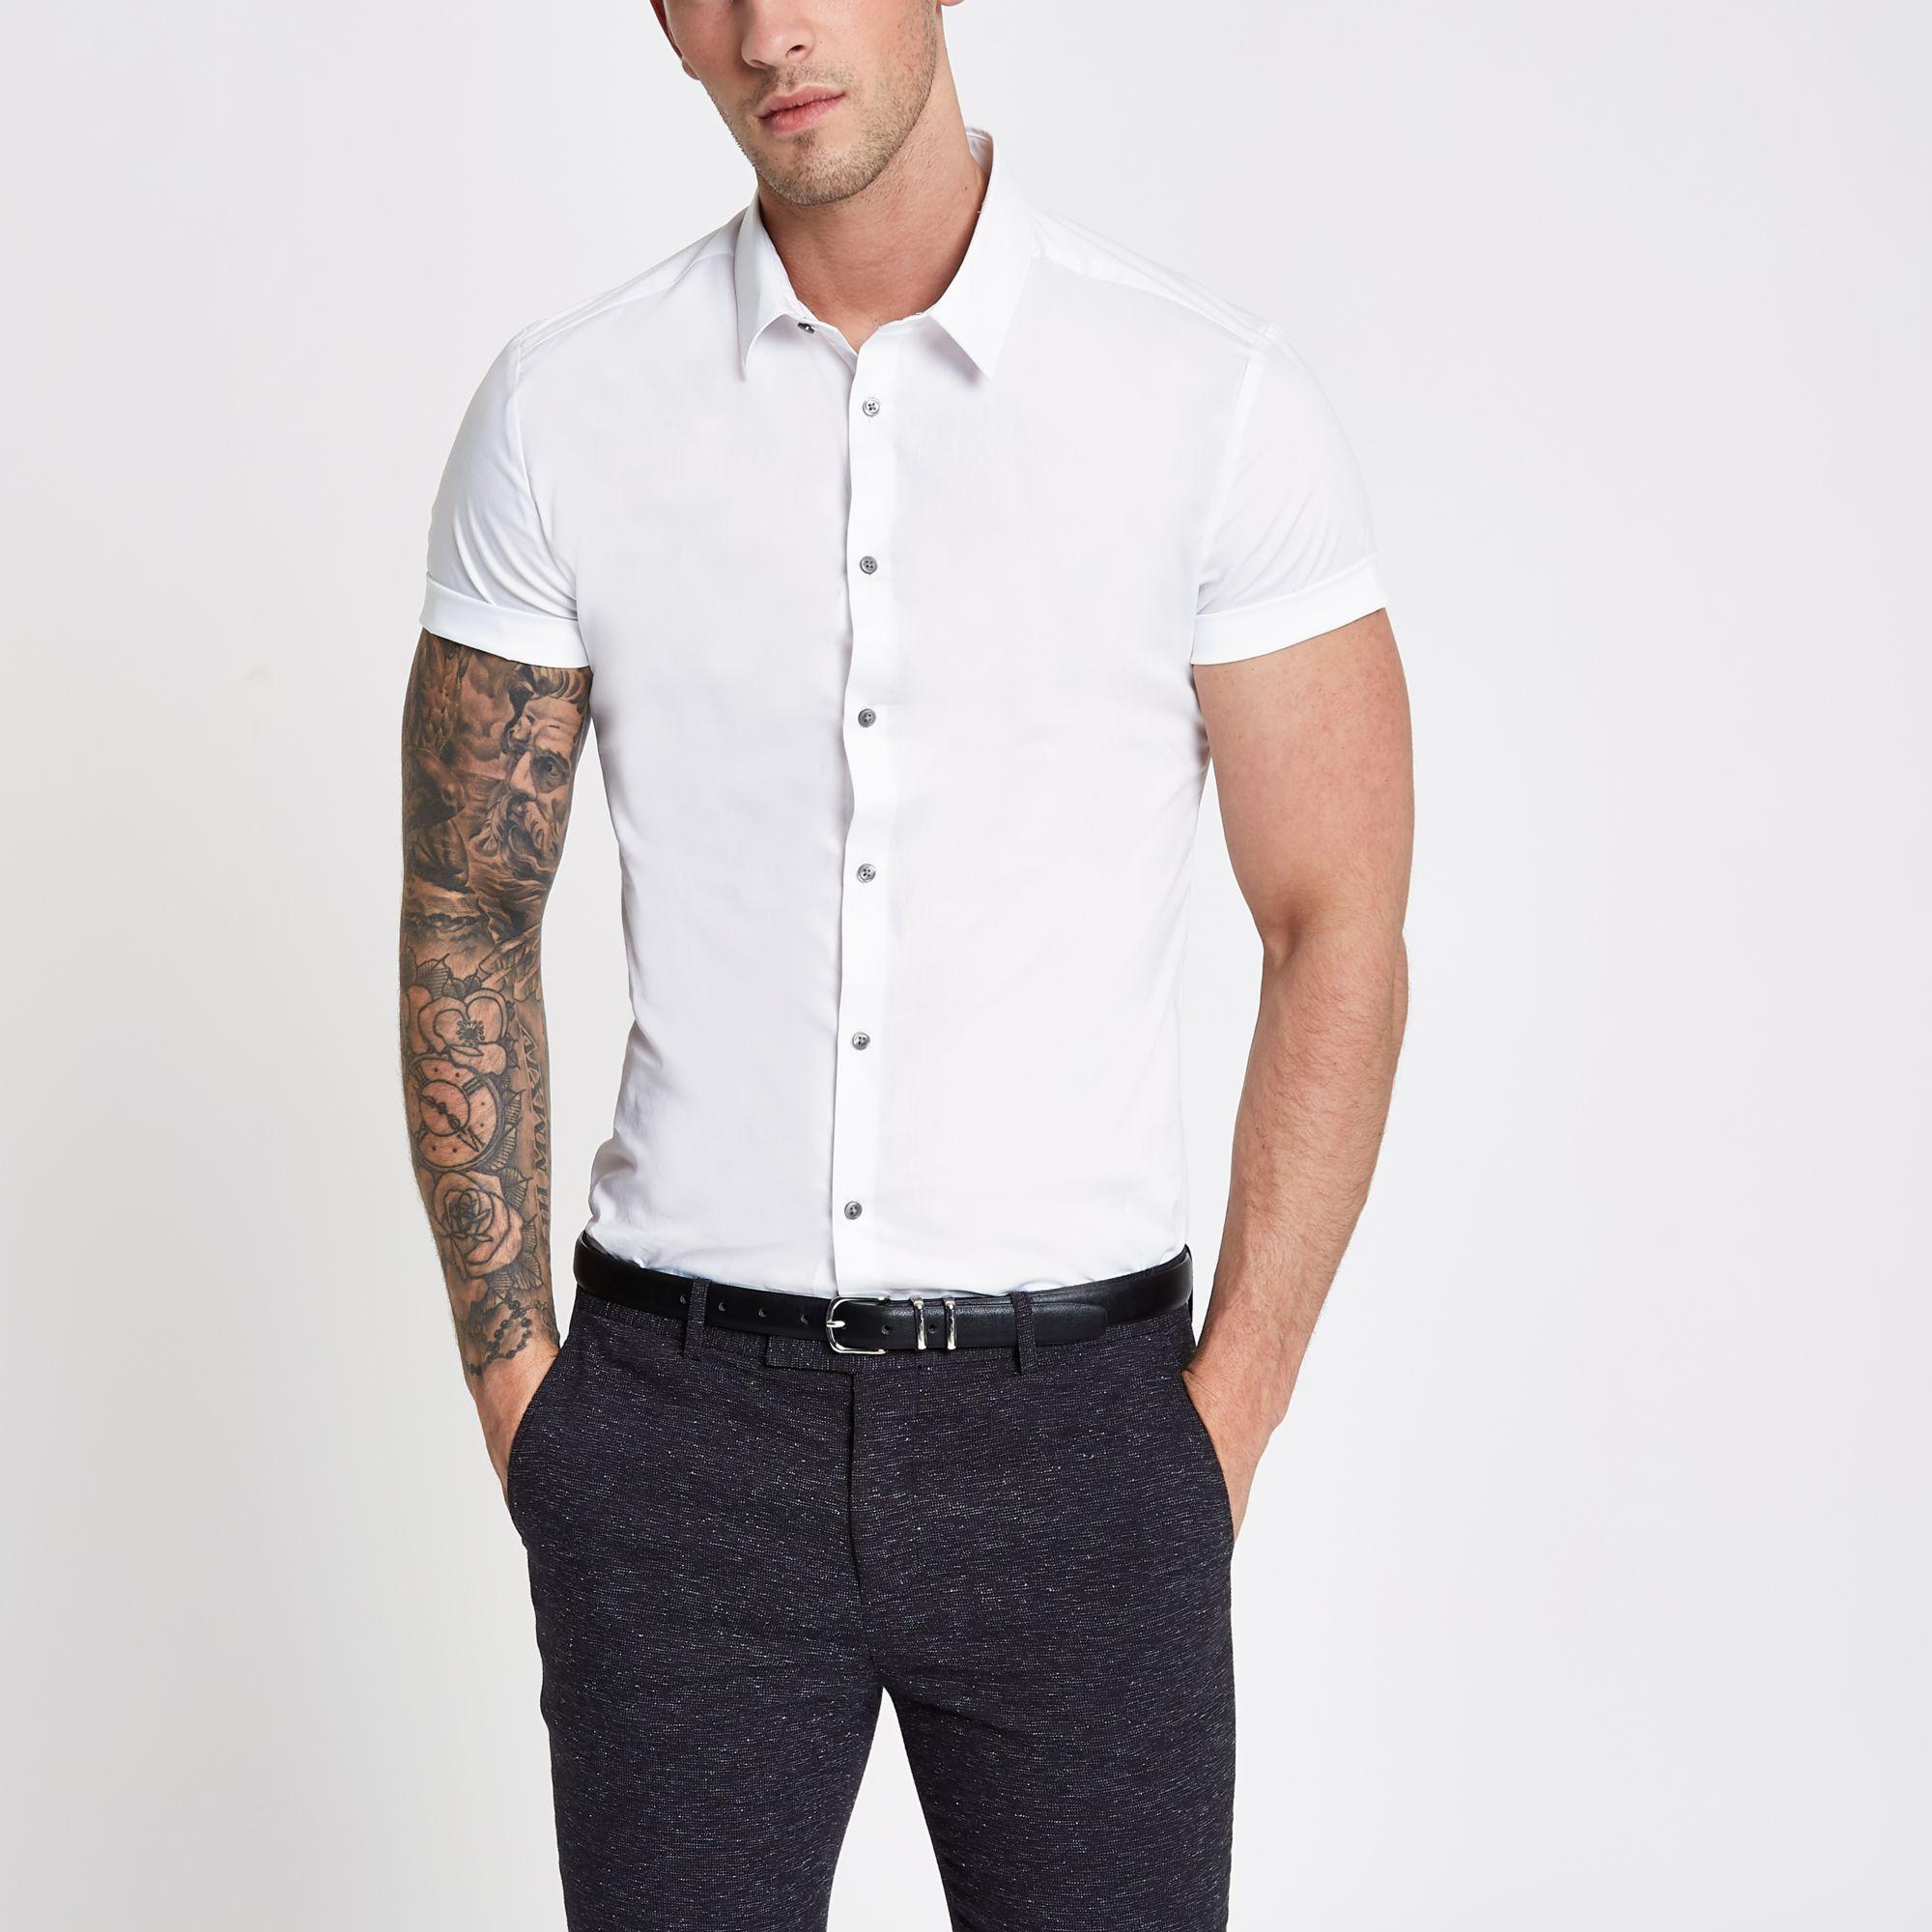 55121a4b21 River Island - White Muscle Fit Short Sleeve Shirt for Men - Lyst. View  fullscreen